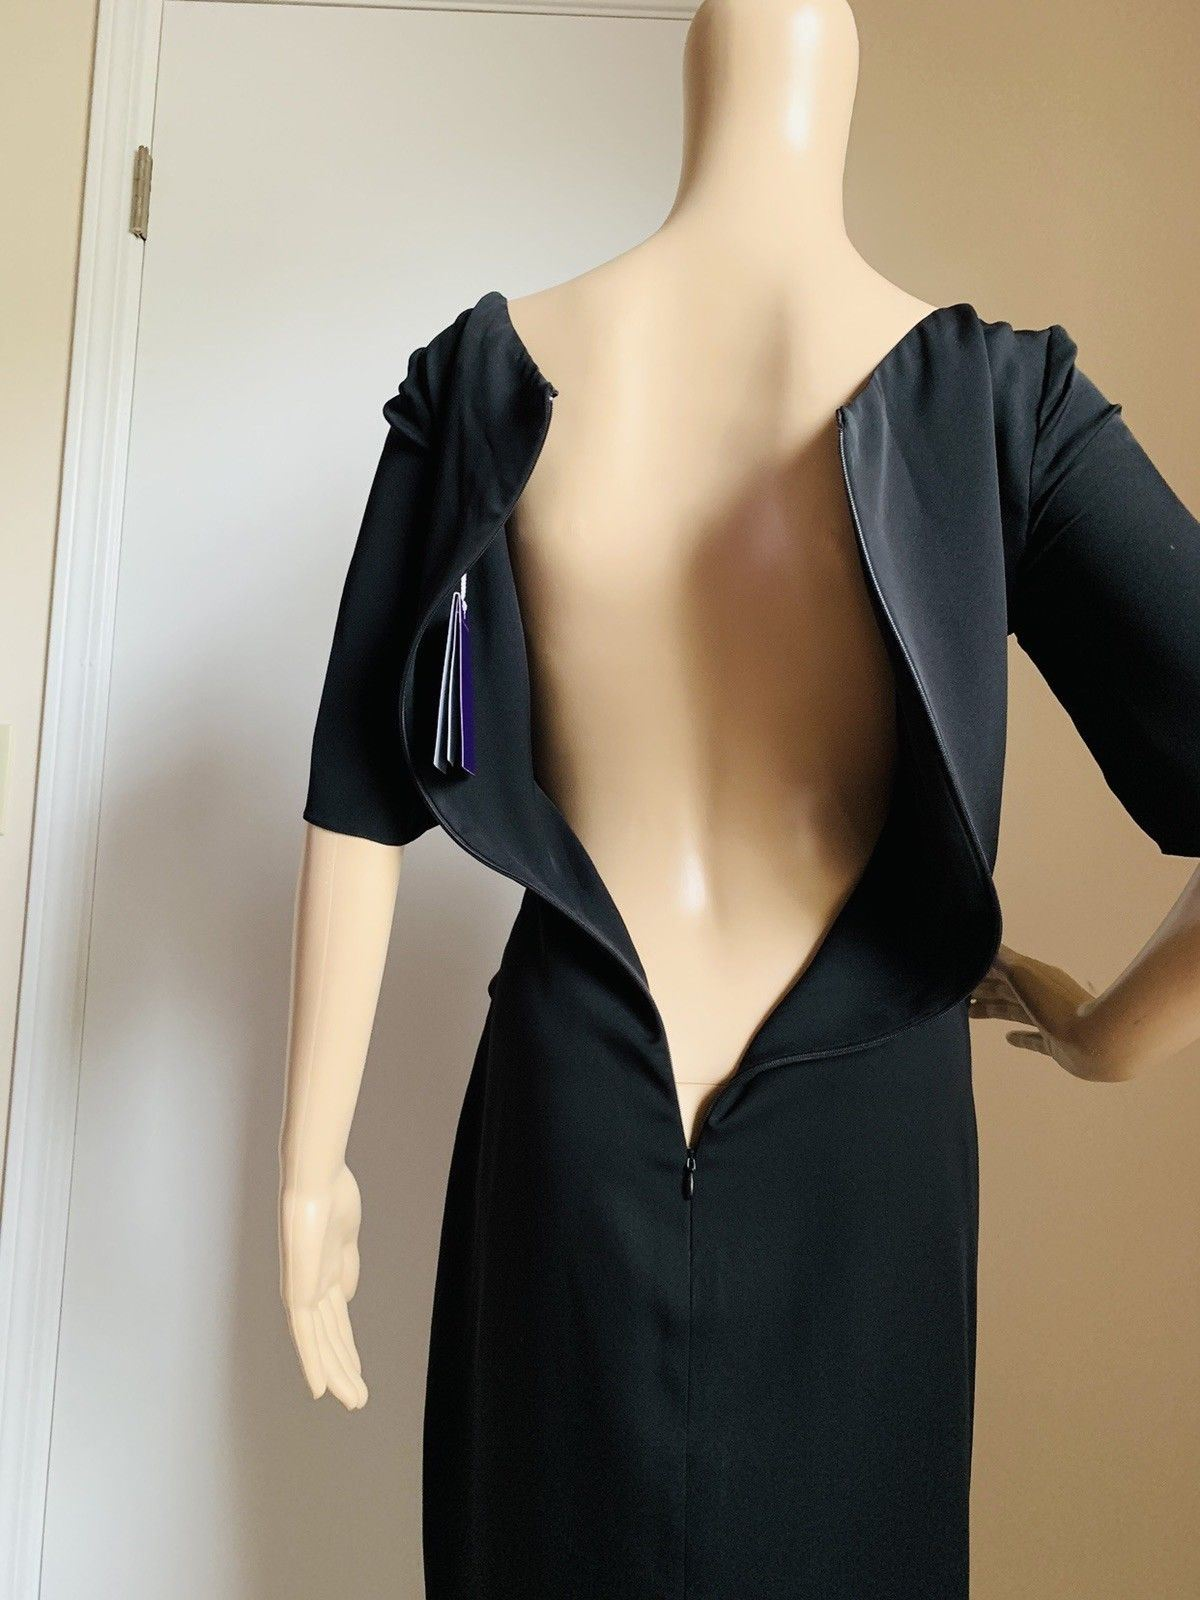 New $1690 Ralph Lauren Purple Label Dresses Dark Black Size 10 US Made In USA